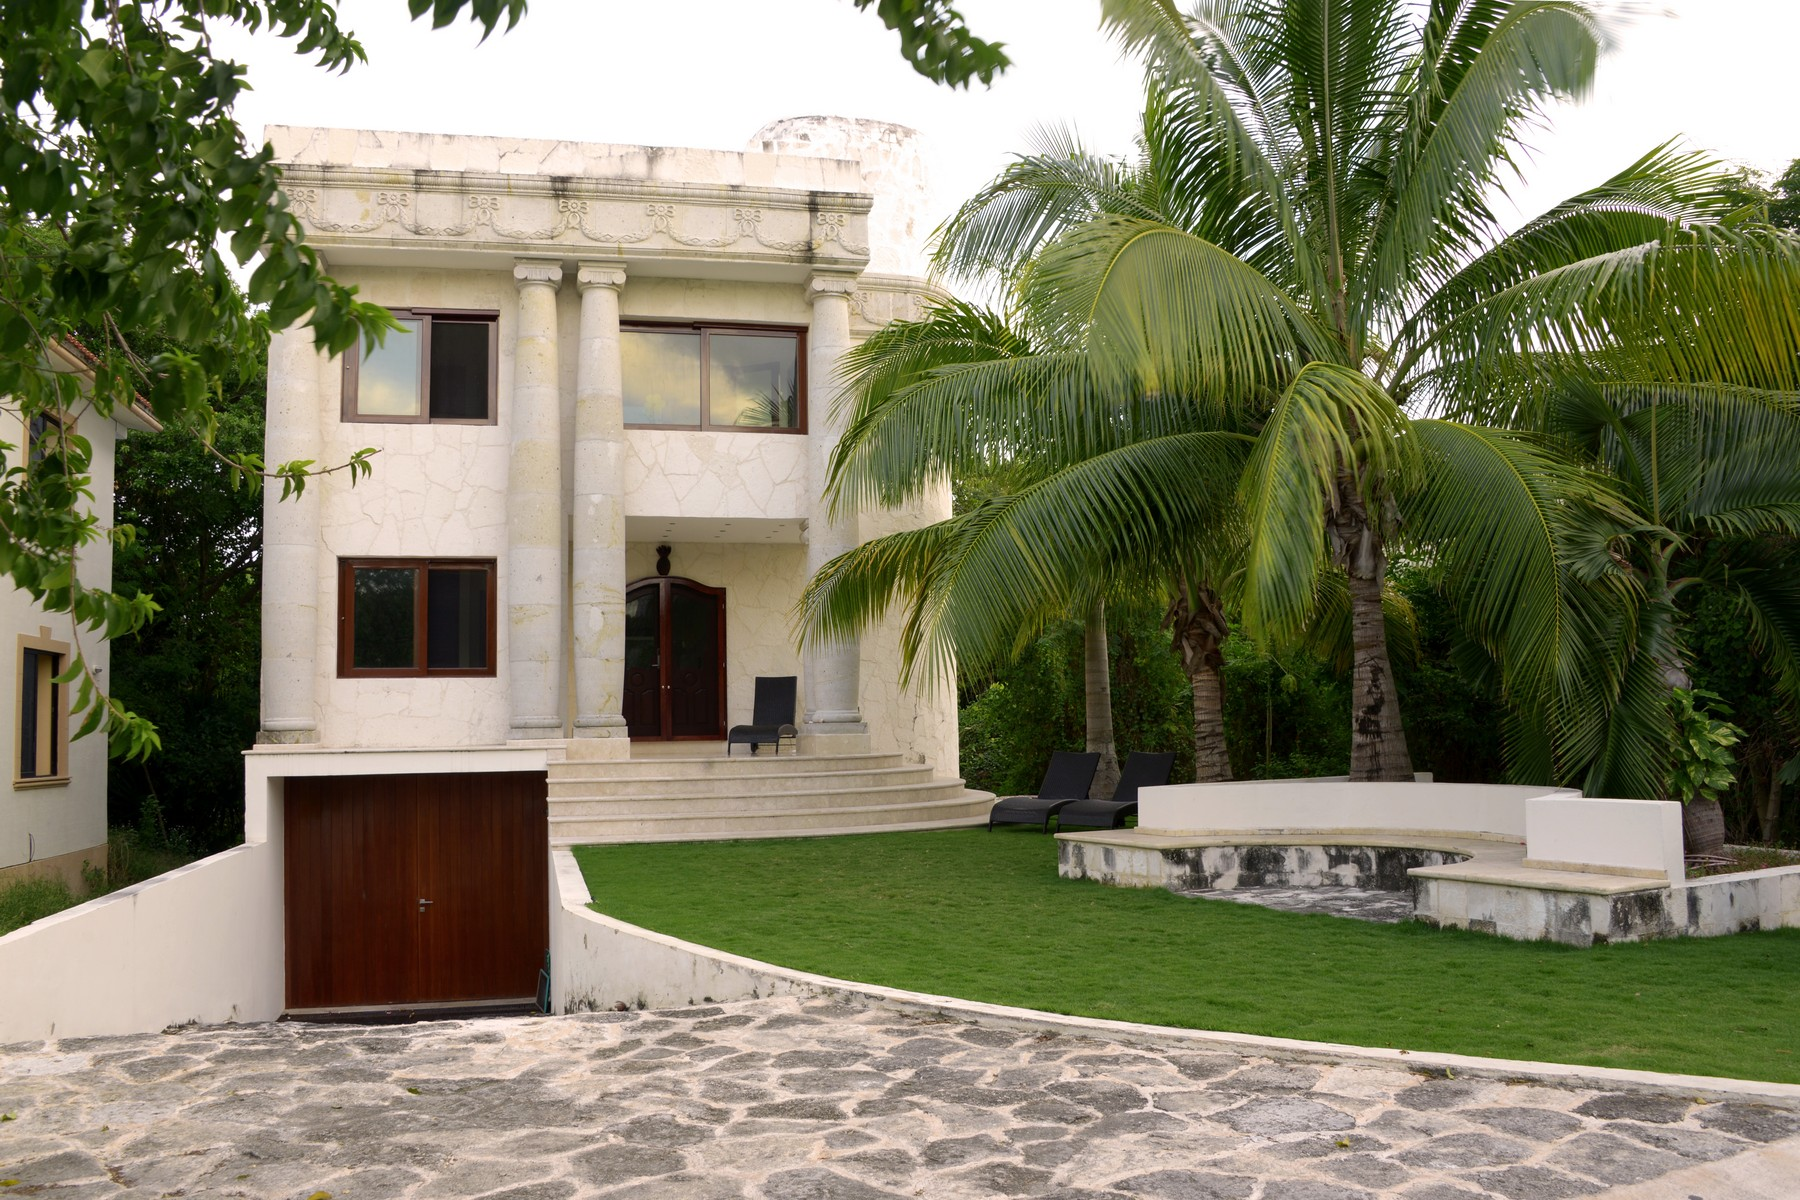 Single Family Home for Sale at ROME HOME Retorno Xaman-Ha, Lol-Ha Ac Playacar Fase II Playa Del Carmen, 77710 Mexico